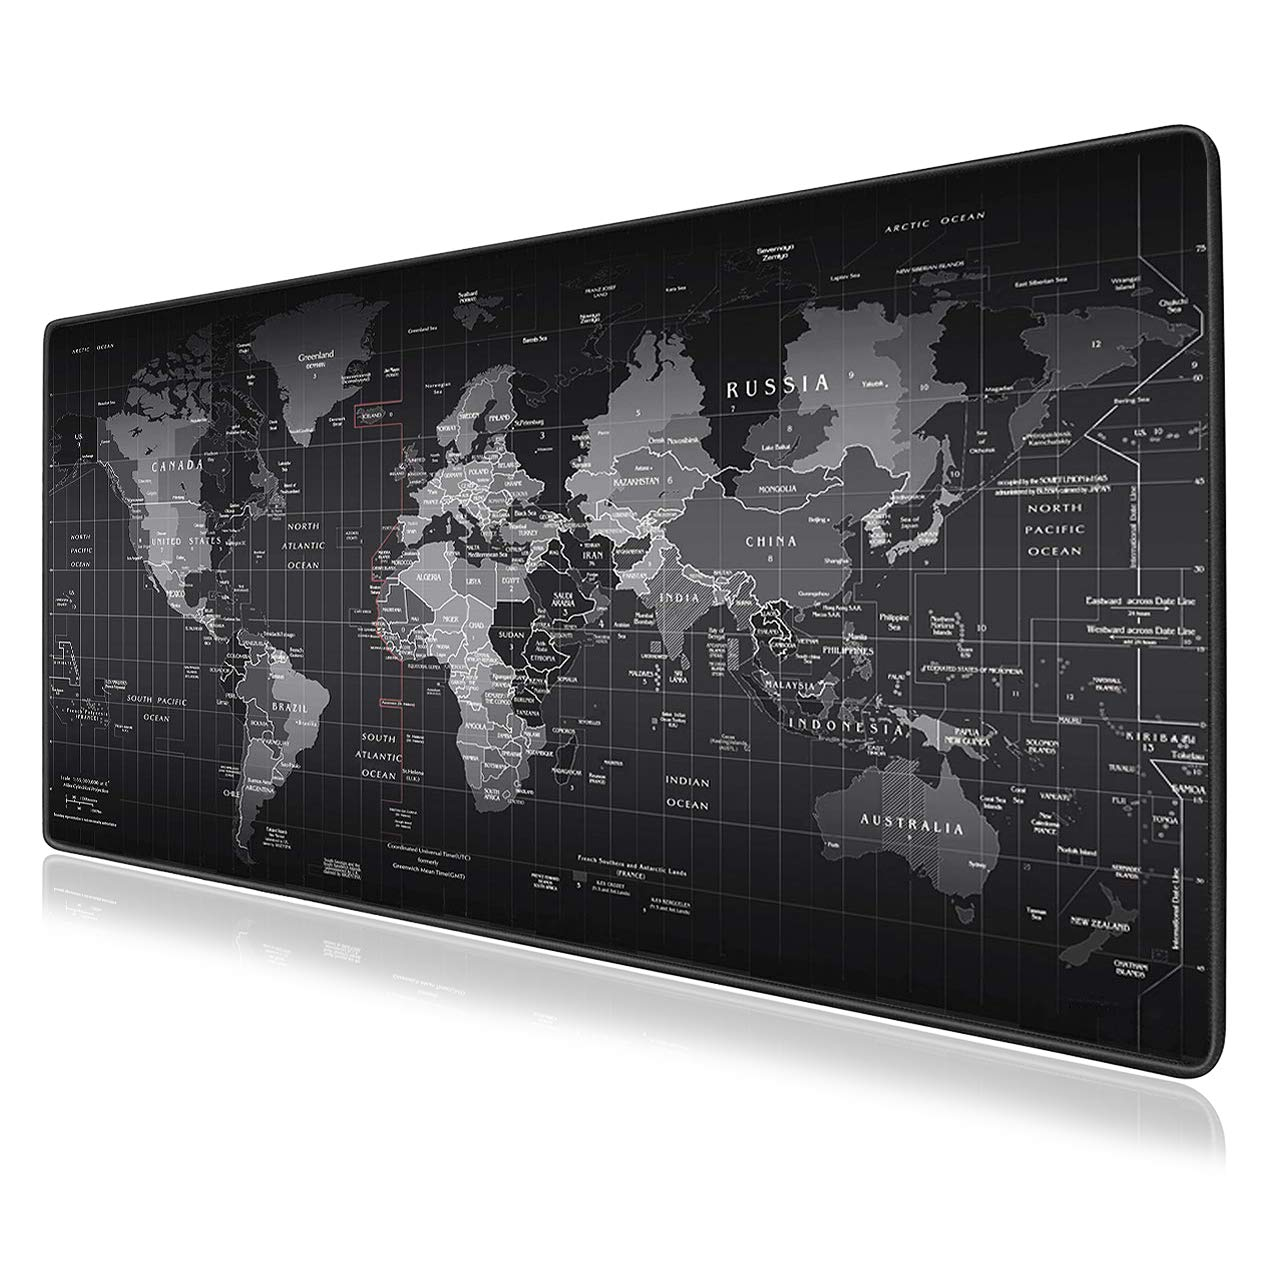 """Vipamz® Extended XXXL Gaming Mouse Pad - 35.4""""x15.7""""x0.12"""" Dimension - Portable with Extended XXL Size - Non-Slip Rubber Base - Special Treated Textured Weave with Precision Control (worldmap) product image"""